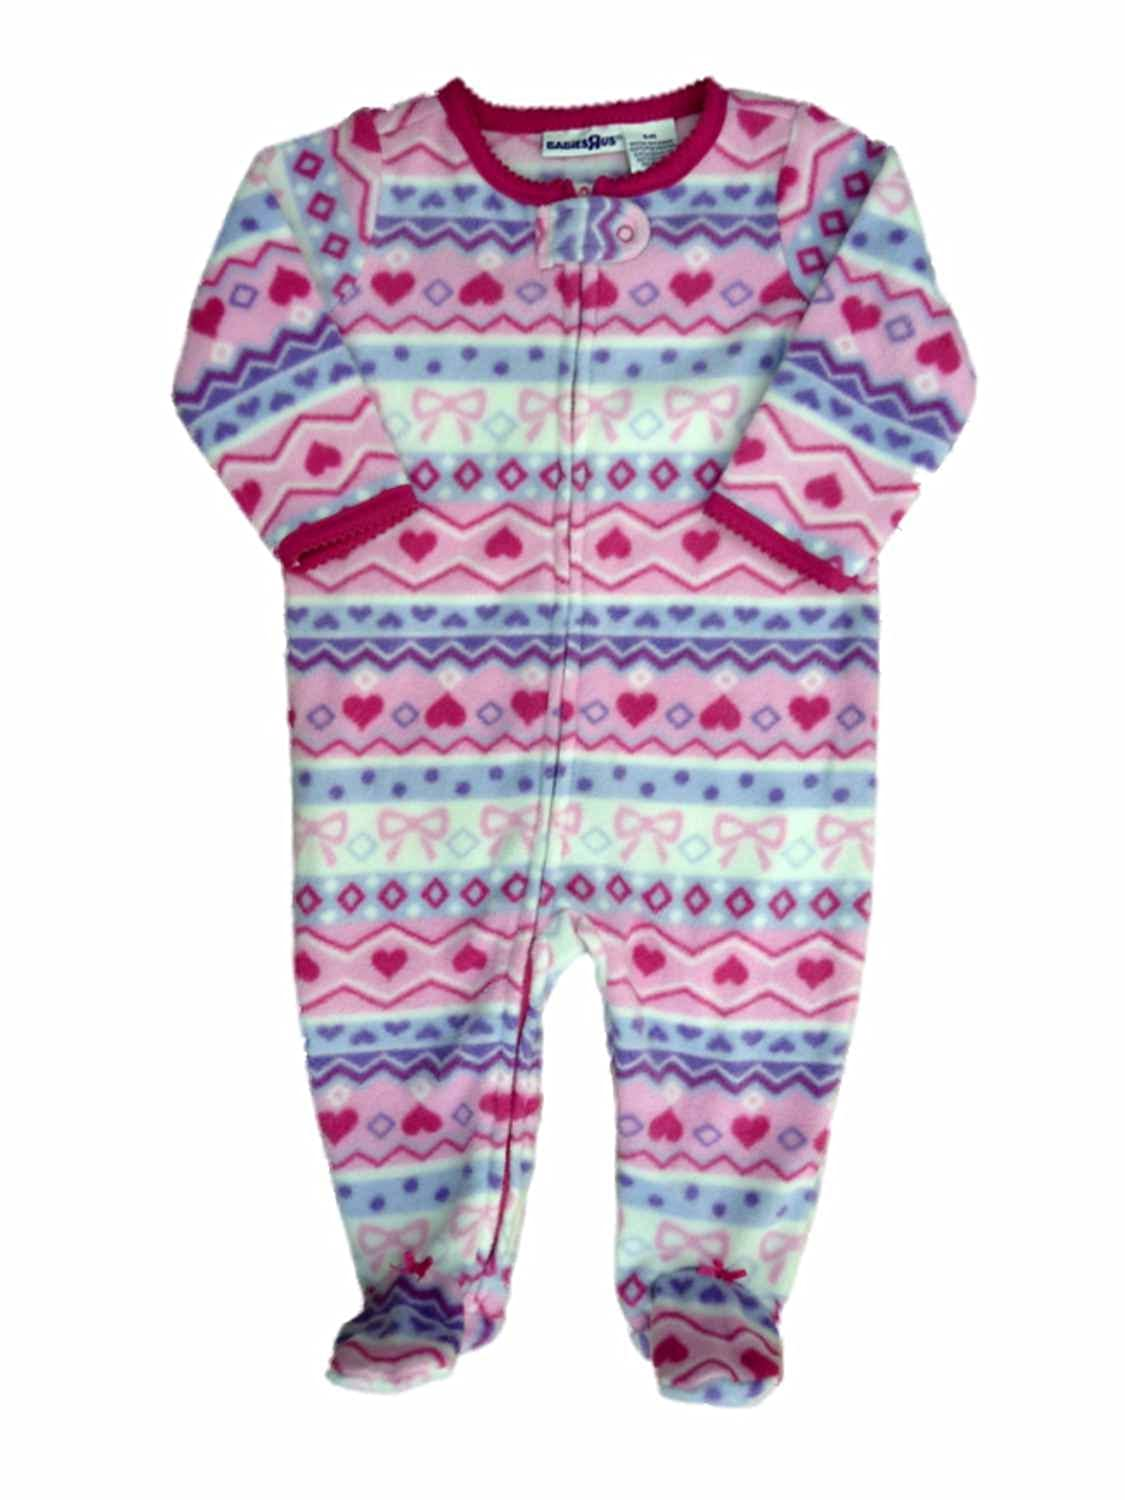 b4a1472f8d Amazon.com  Babies R Us Infant Girls Nordic Pink Blanket Sleeper Footed  Pajamas 6m  Clothing